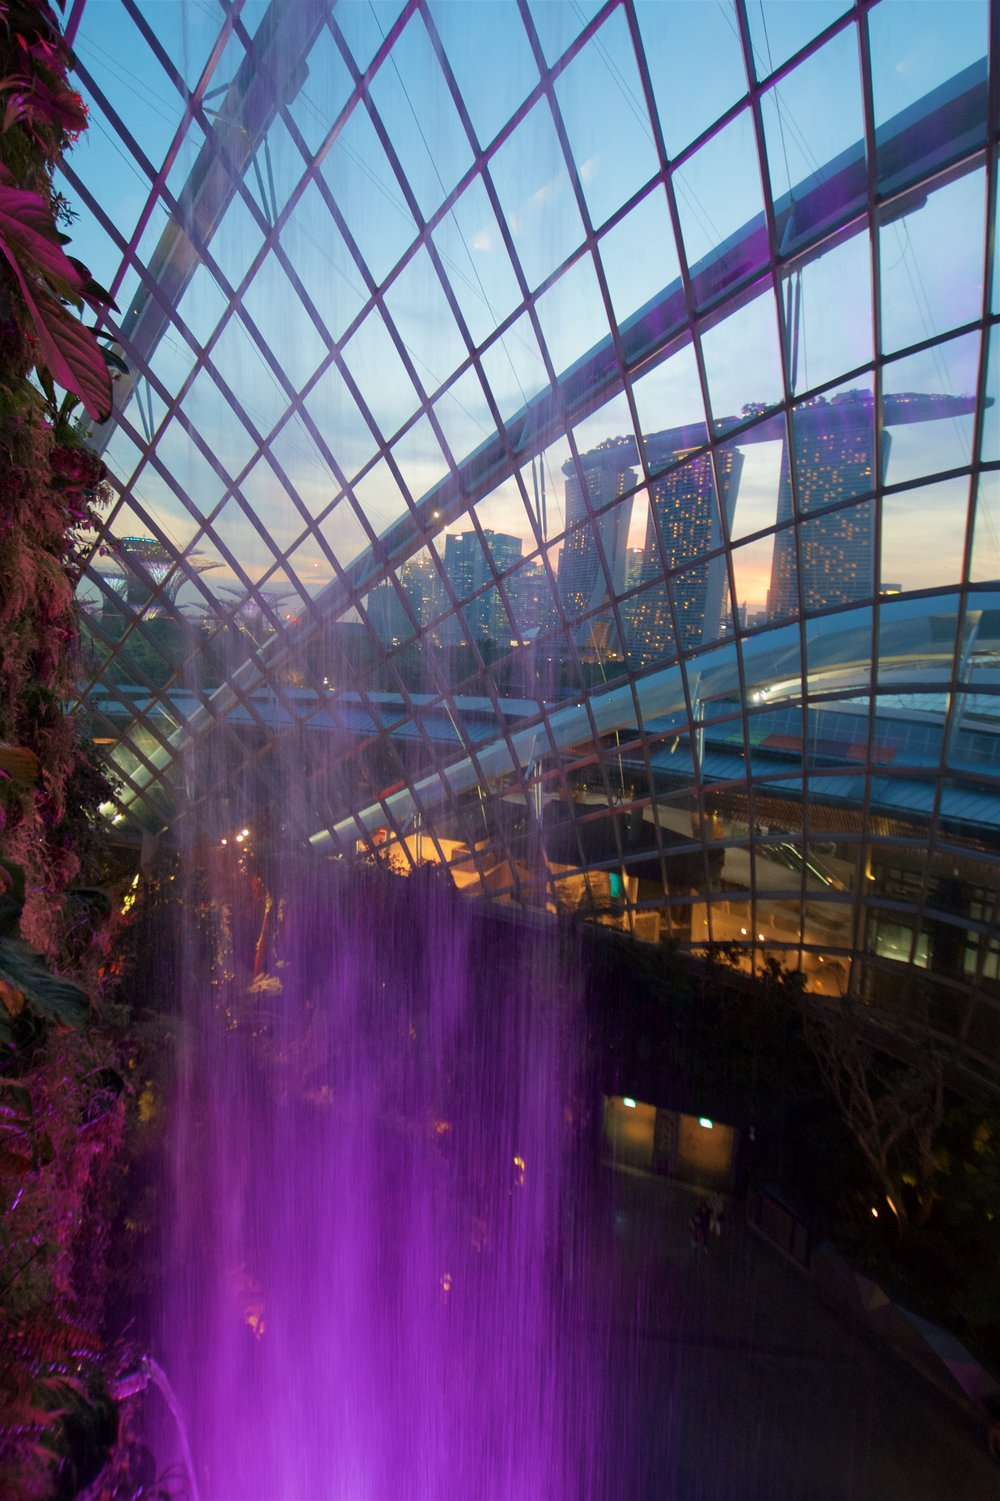 waterfall-illuminated-by-purple-lights_29691253770_o.jpg